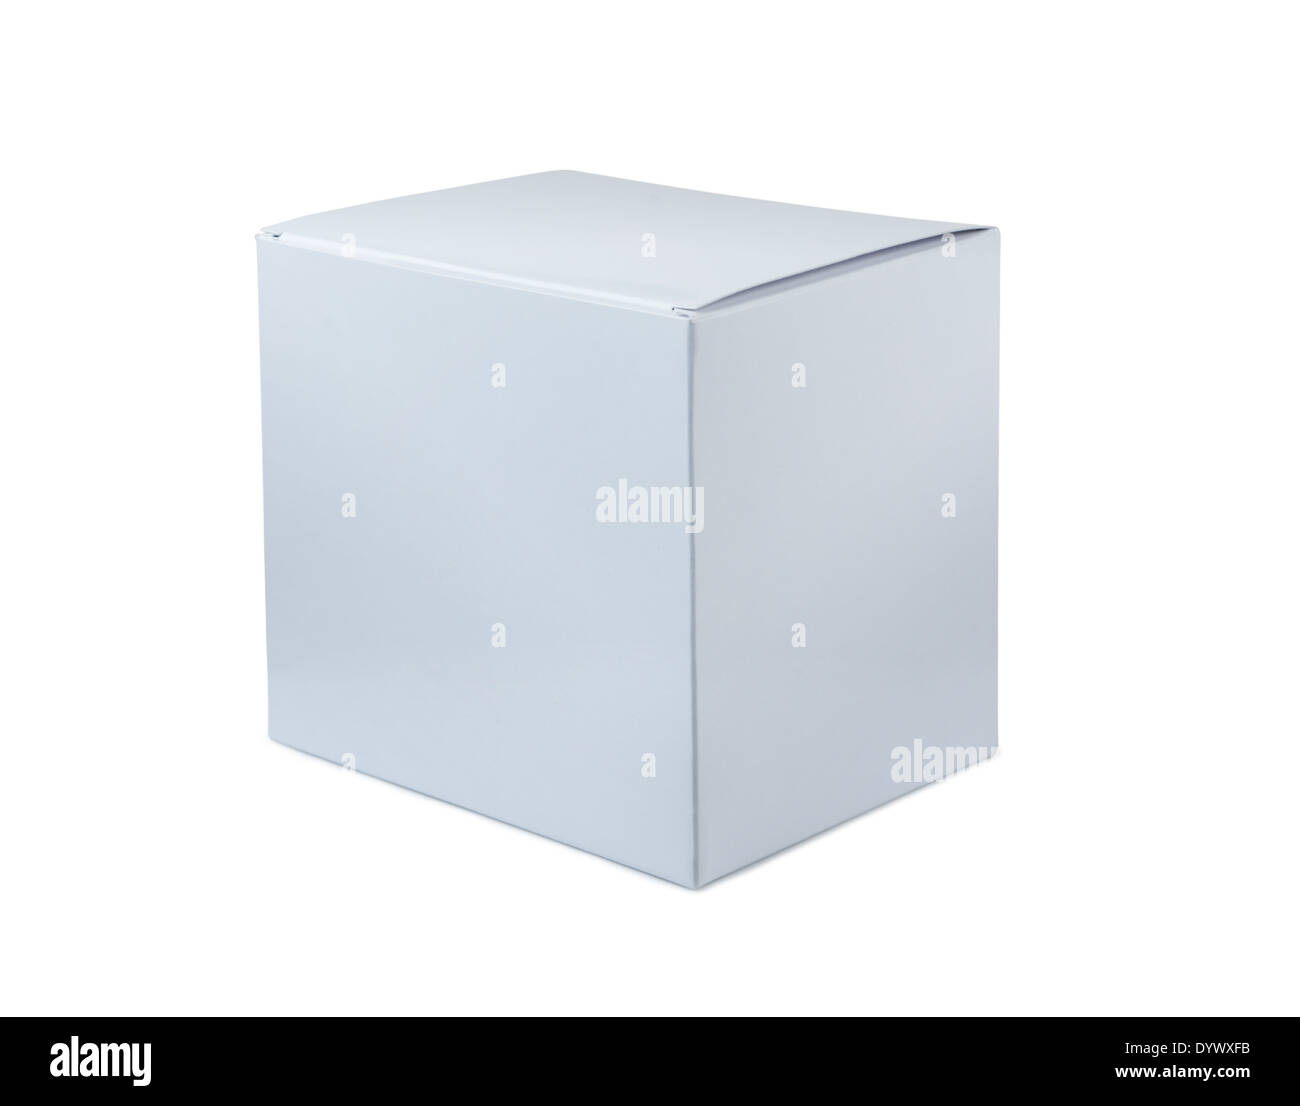 White box on a white background - Stock Image